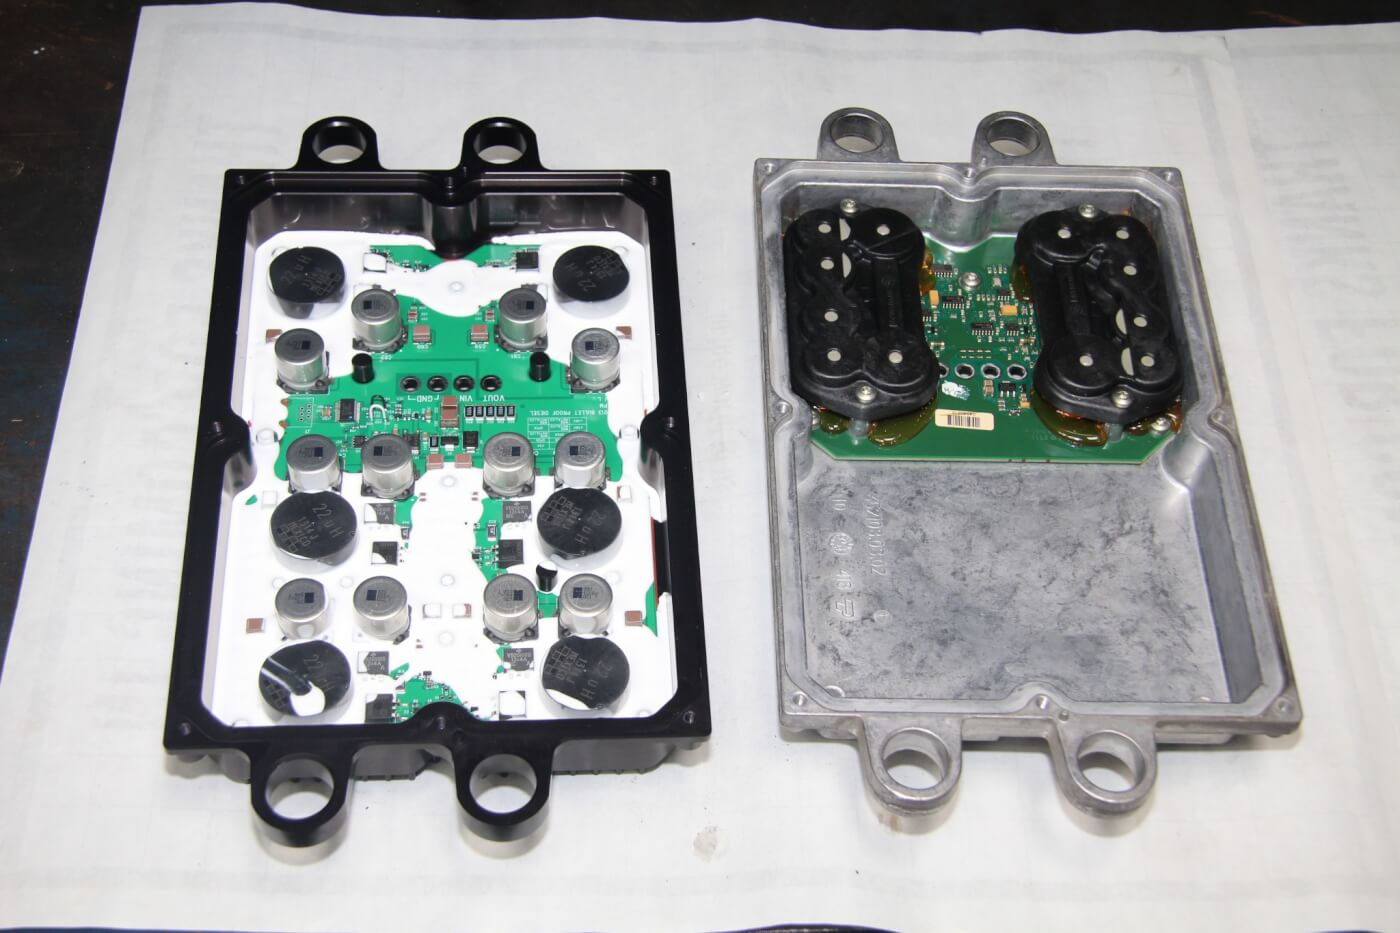 8. Here we see the Bullet Proof FICM power supply on the left and the OEM unit on the right. The Bullet Proof part seen here has the six-phase upgrade. Both four- and six-phase Bullet Proof power supplies are superior to the OEM unit.